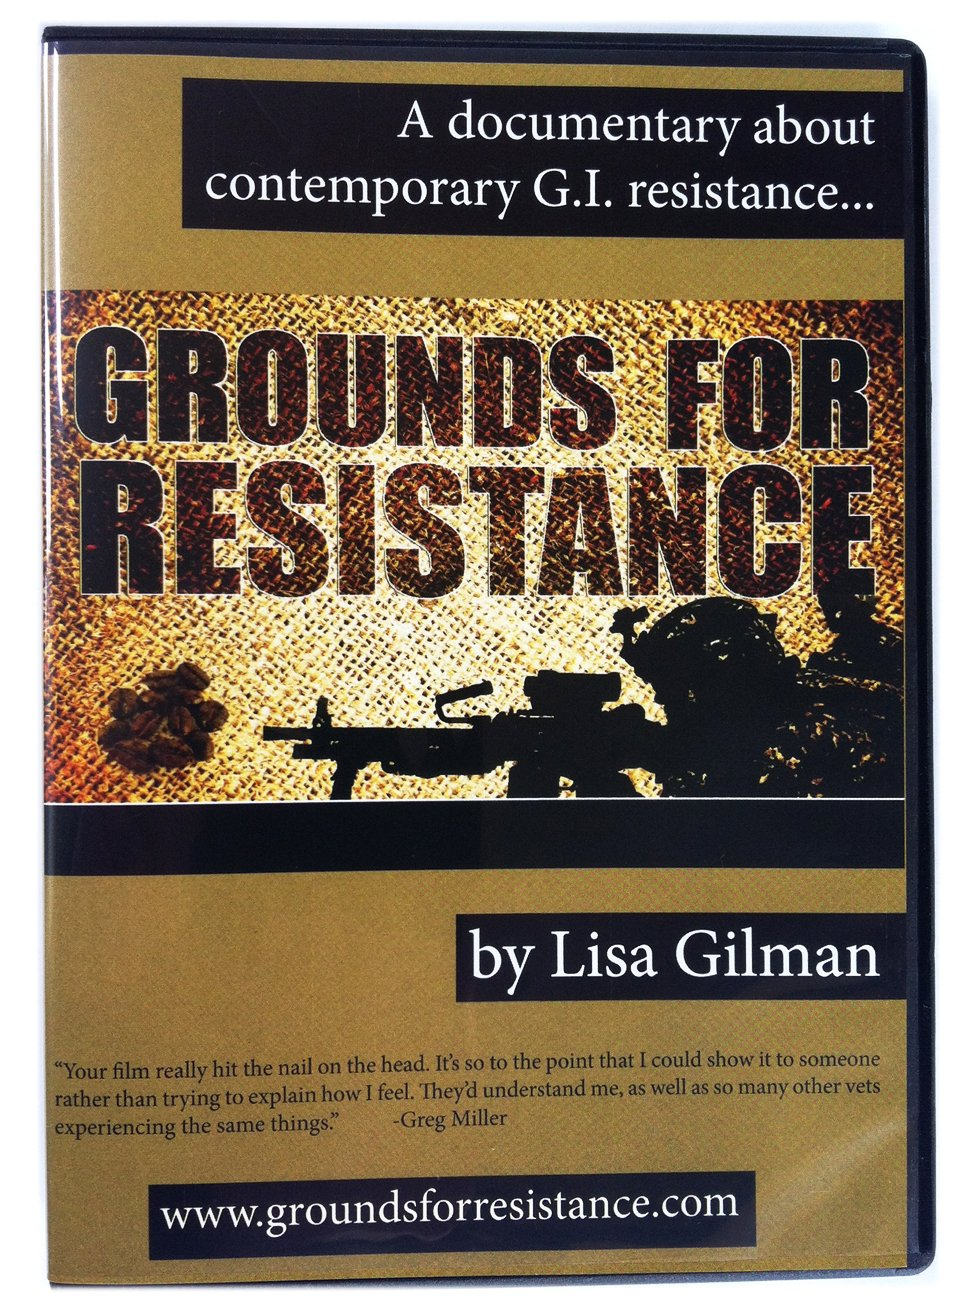 Grounds for Resistance